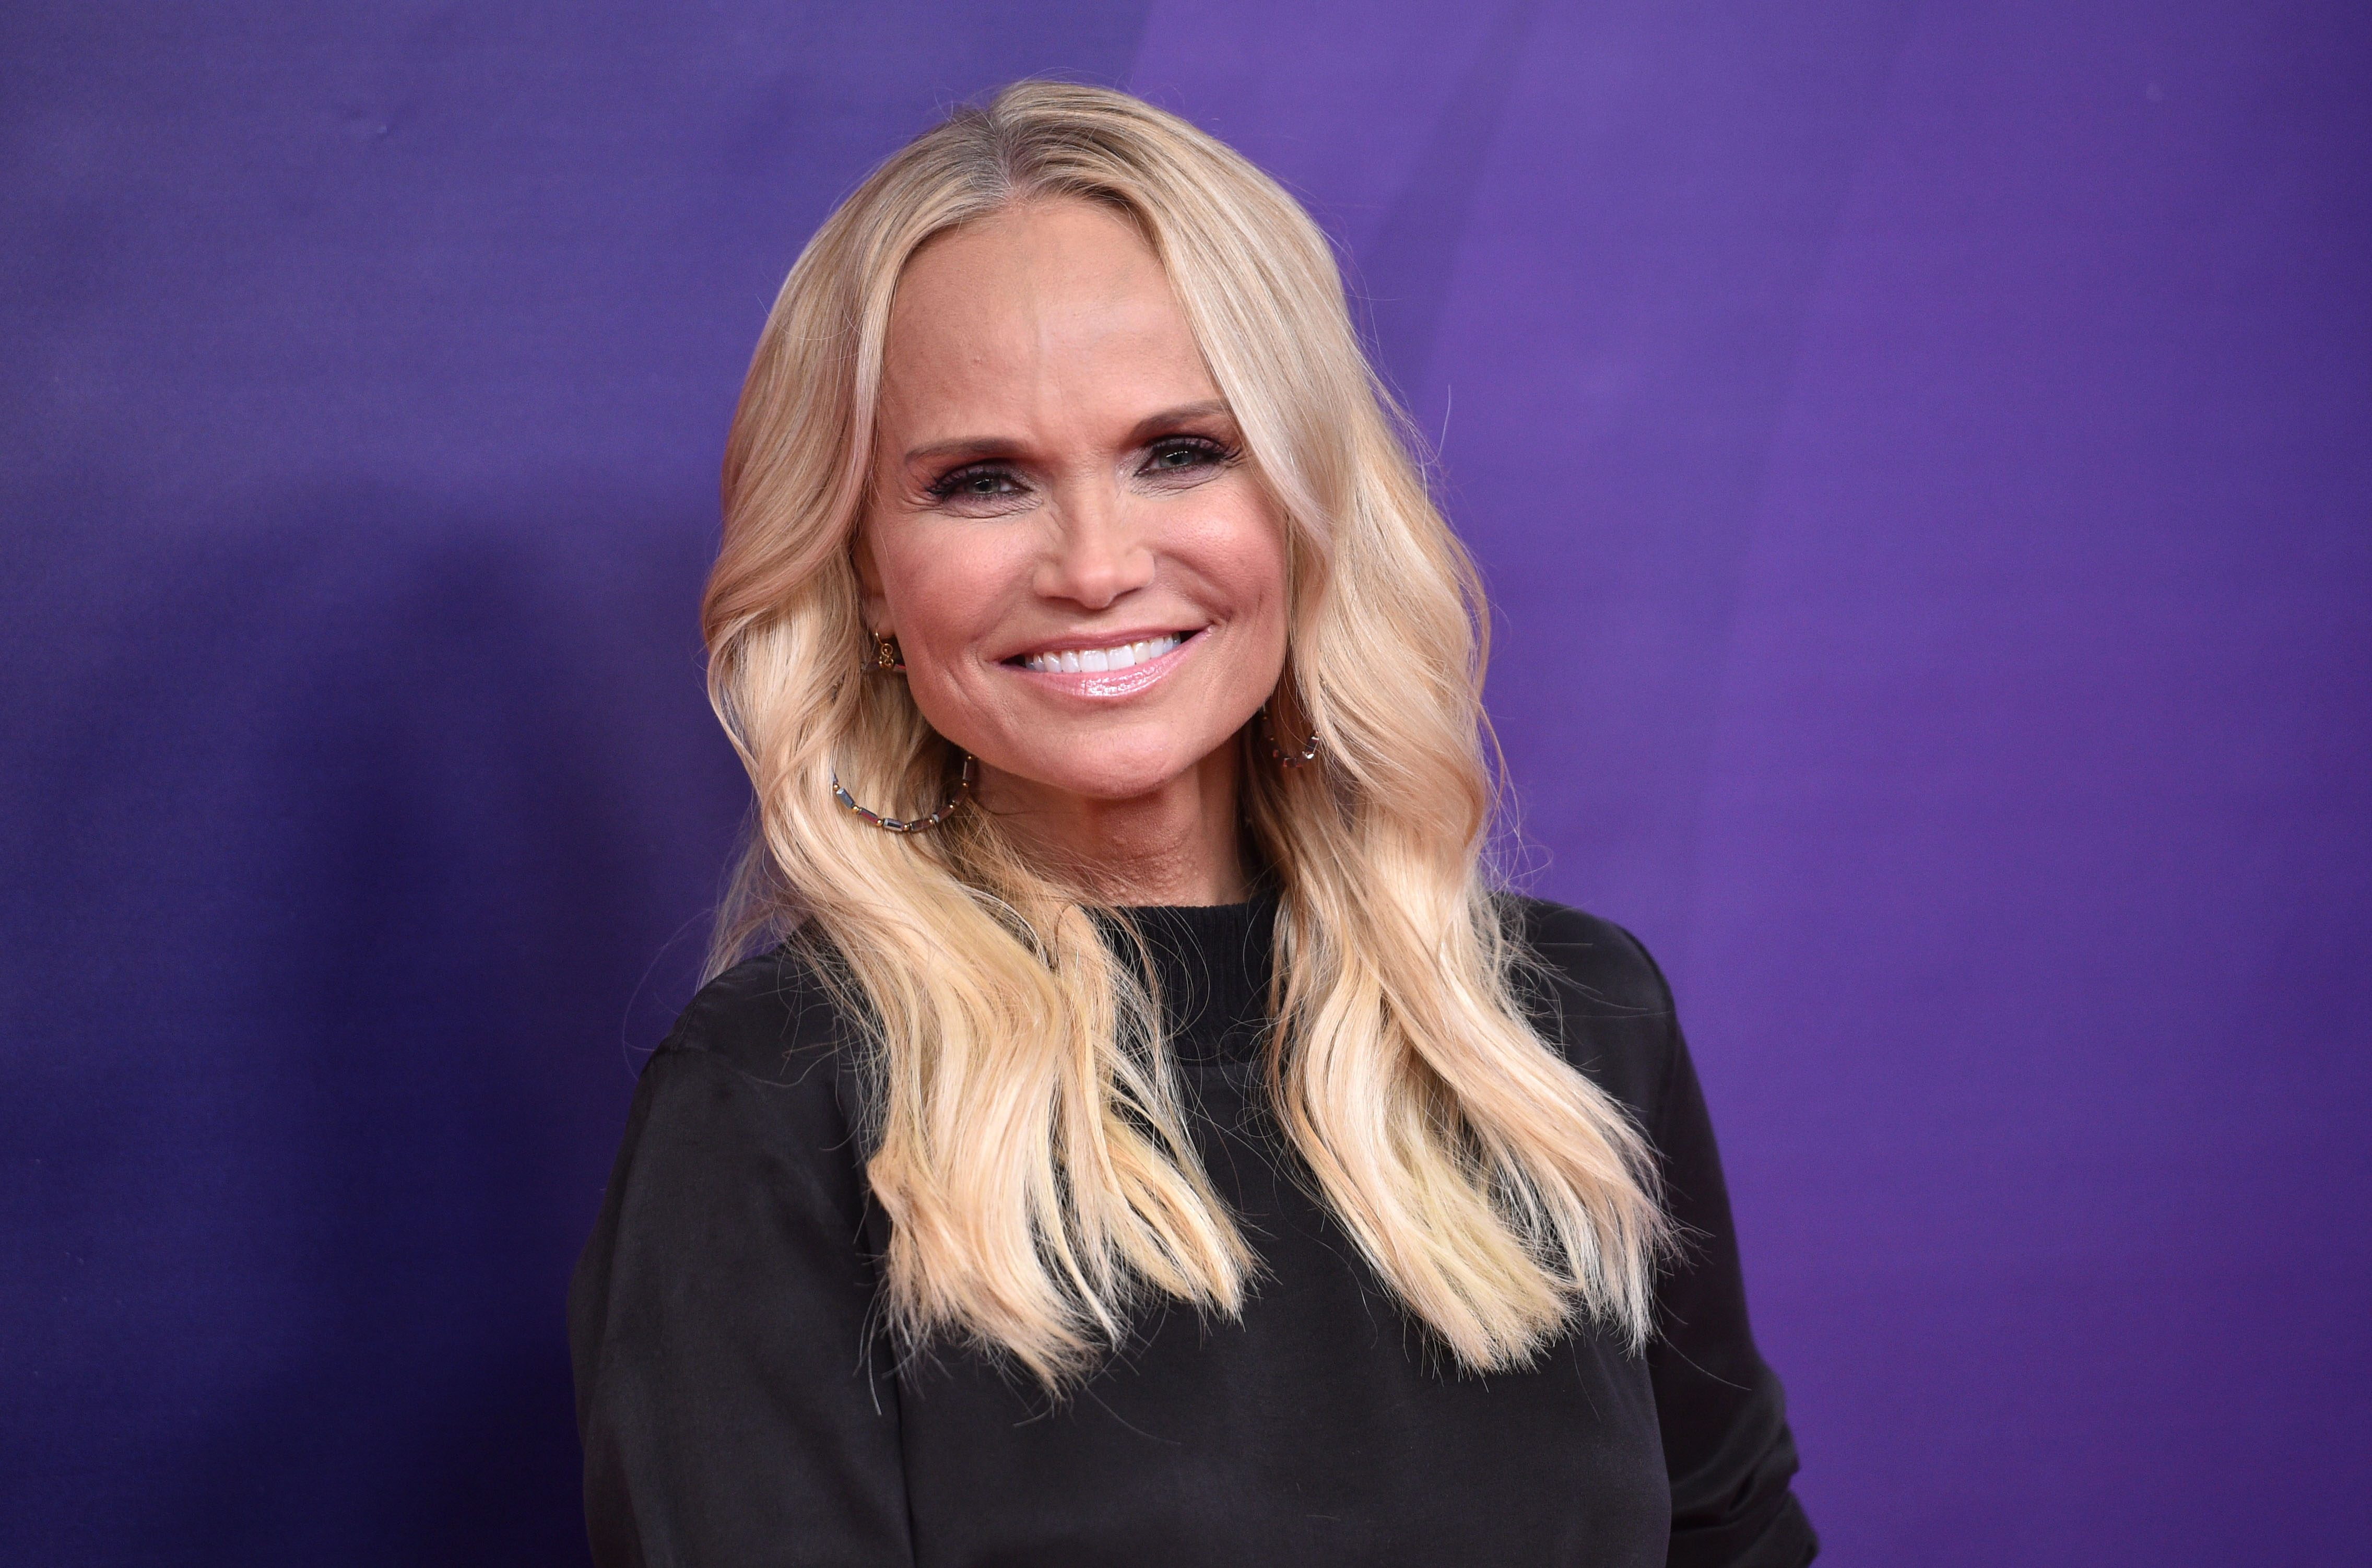 Mandatory Credit: Photo by Stewart Cook/Shutterstock (9657494ez) Kristin Chenoweth NBCUniversal Summer Press Day, Los Angeles, USA - 02 May 2018